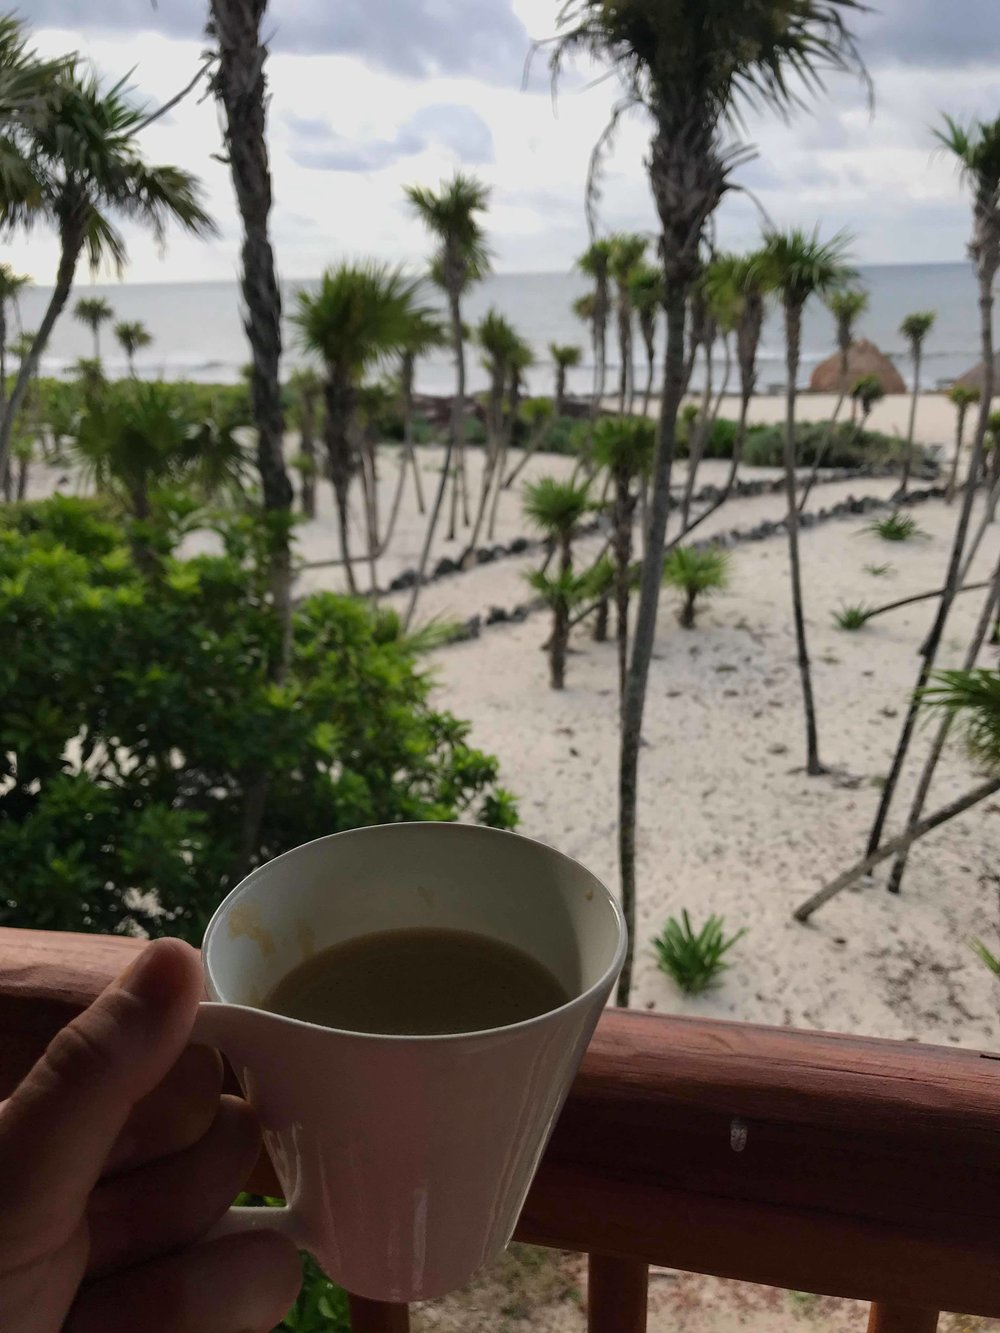 One of our favorite parts of the trip was enjoying coffee out on the porch every morning listening to the waves crash!